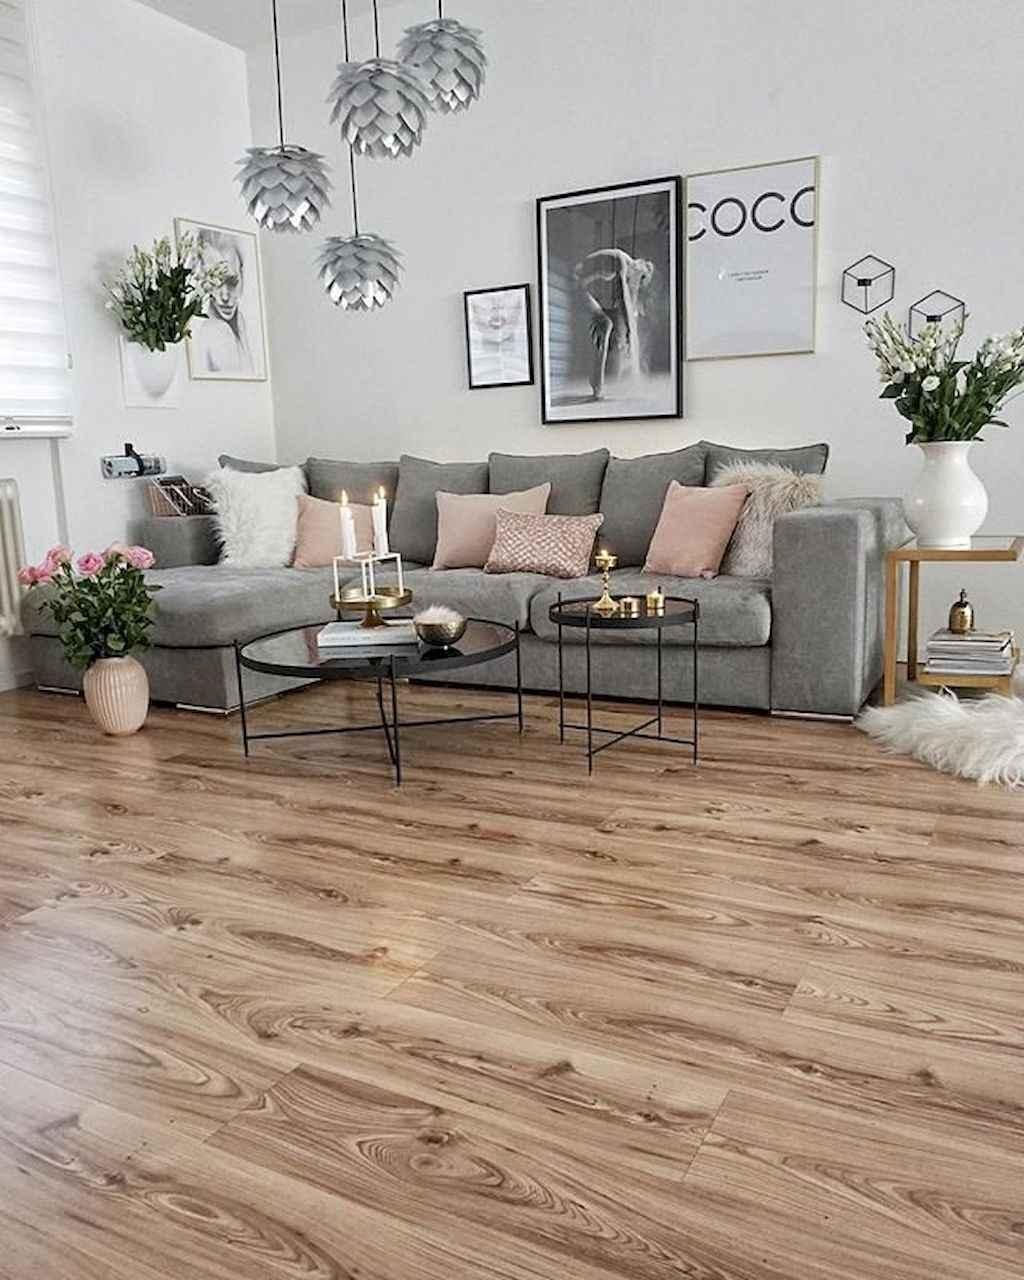 Inspiring apartment living room decorating ideas 12 for 12 by 12 living room design